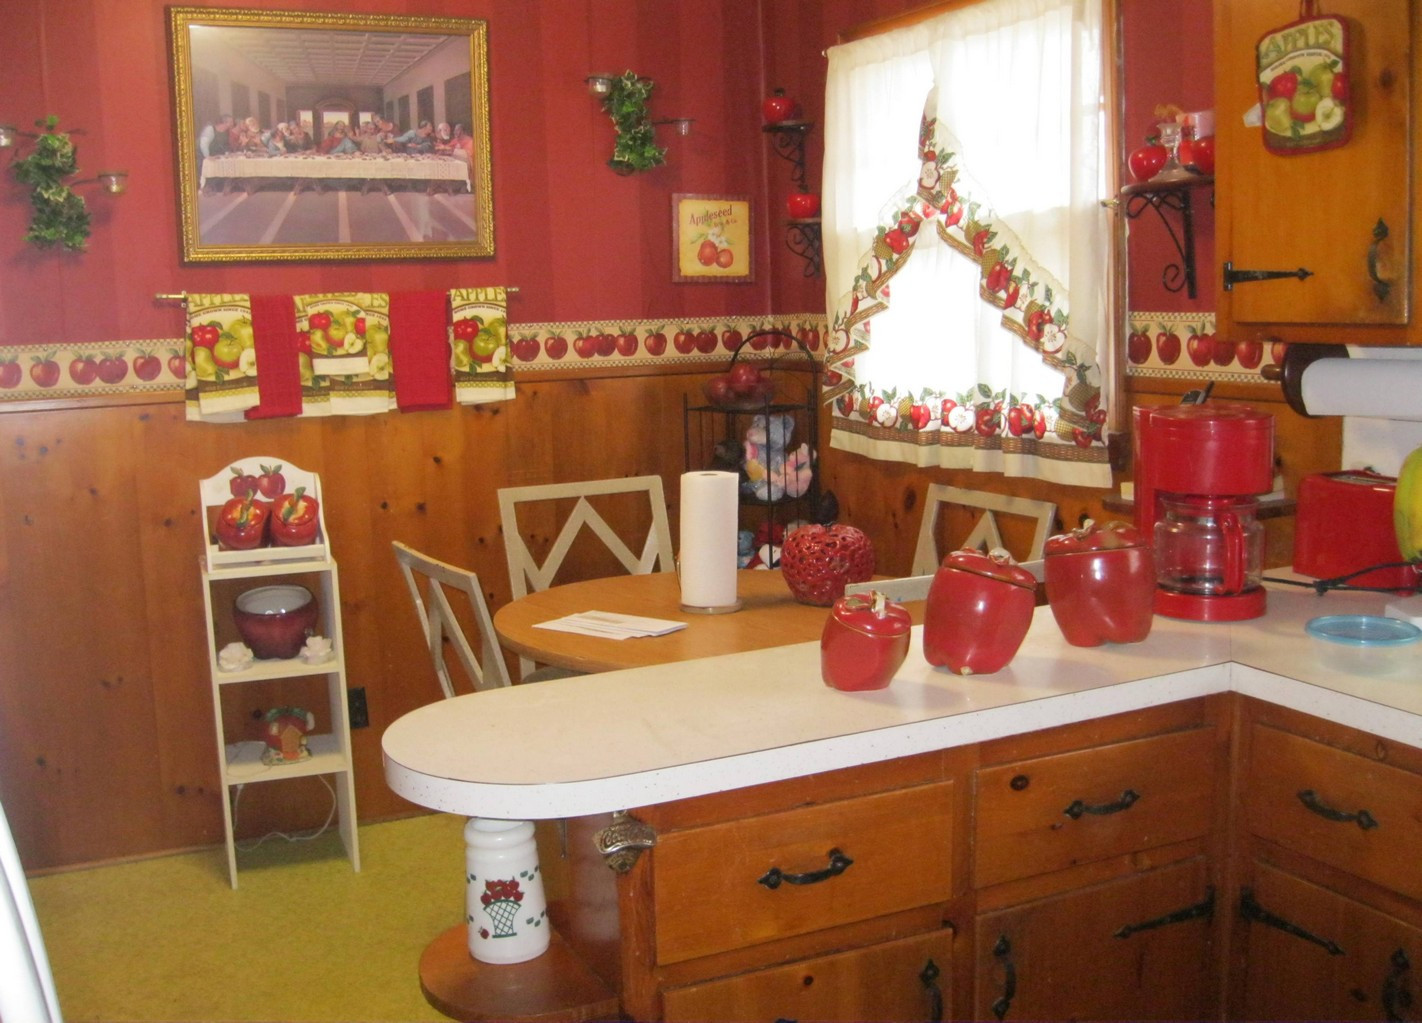 Best ideas about Themed Kitchen Decorations . Save or Pin Apple Kitchen Curtains Themed Apple Kitchen Curtains Now.